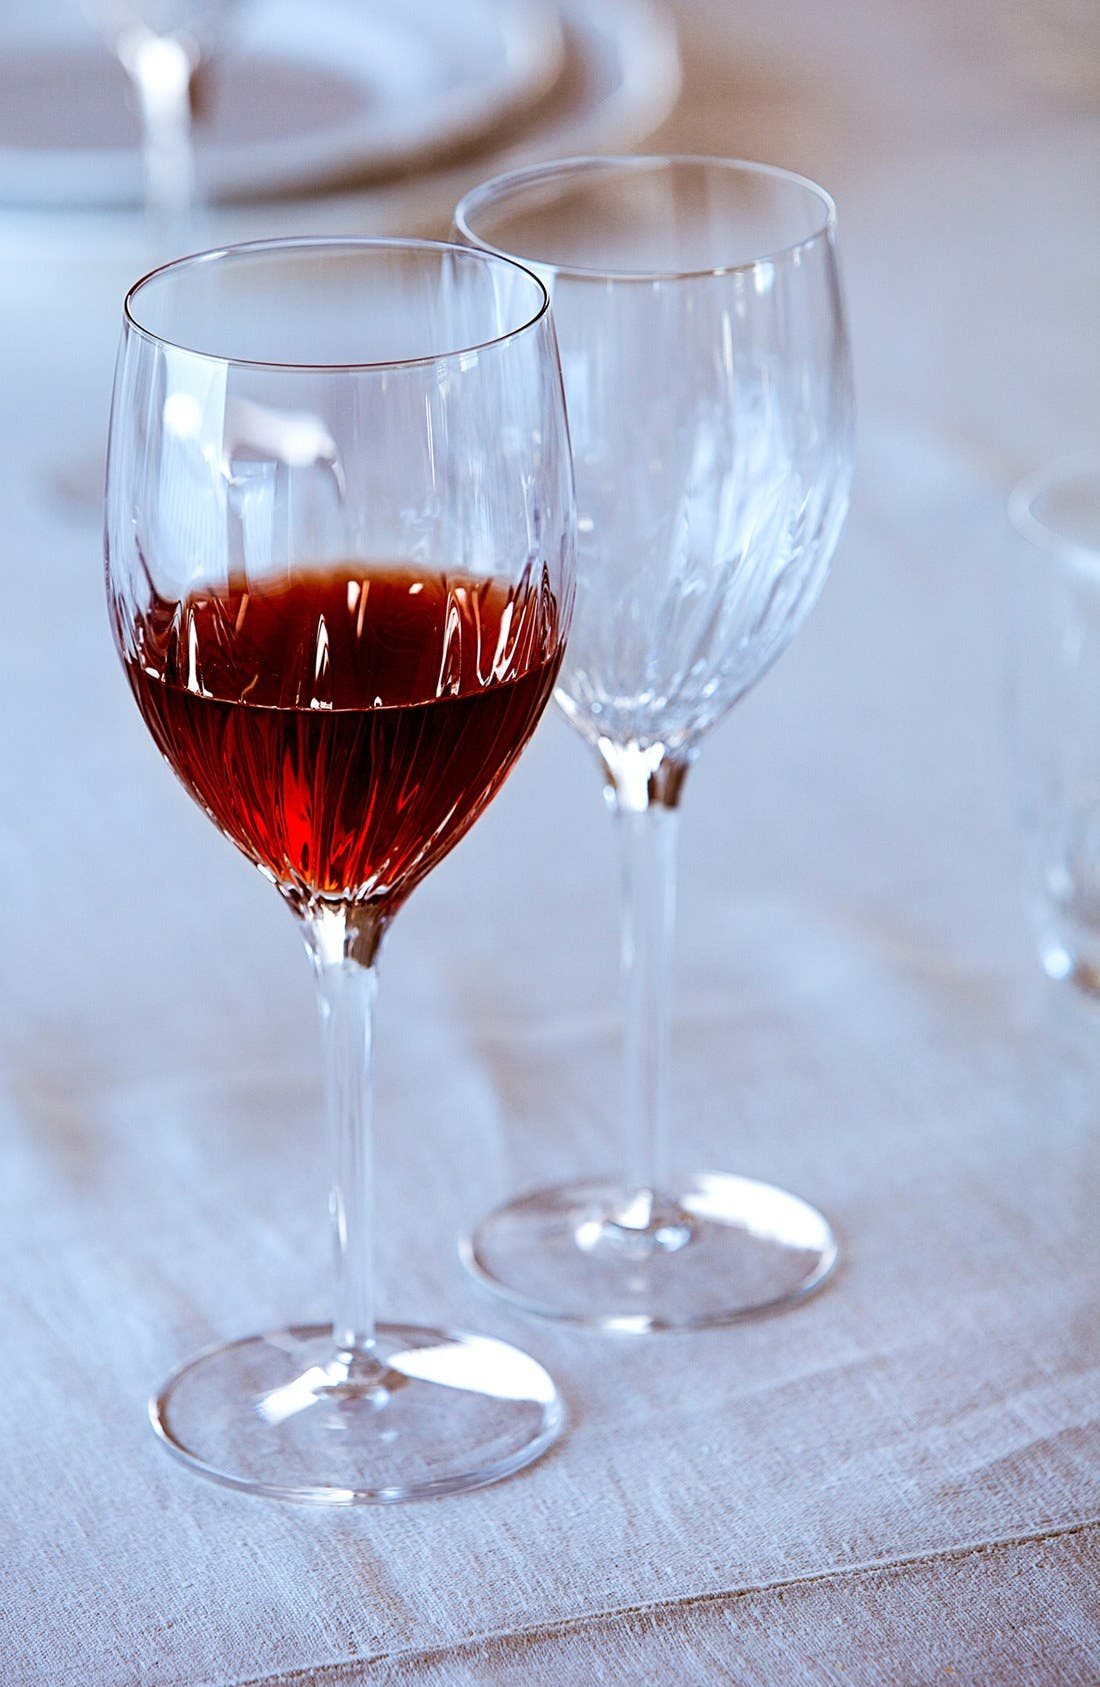 Incanto Set of 4 Red Wine Glasses,                             Alternate thumbnail 2, color,                             CLEAR